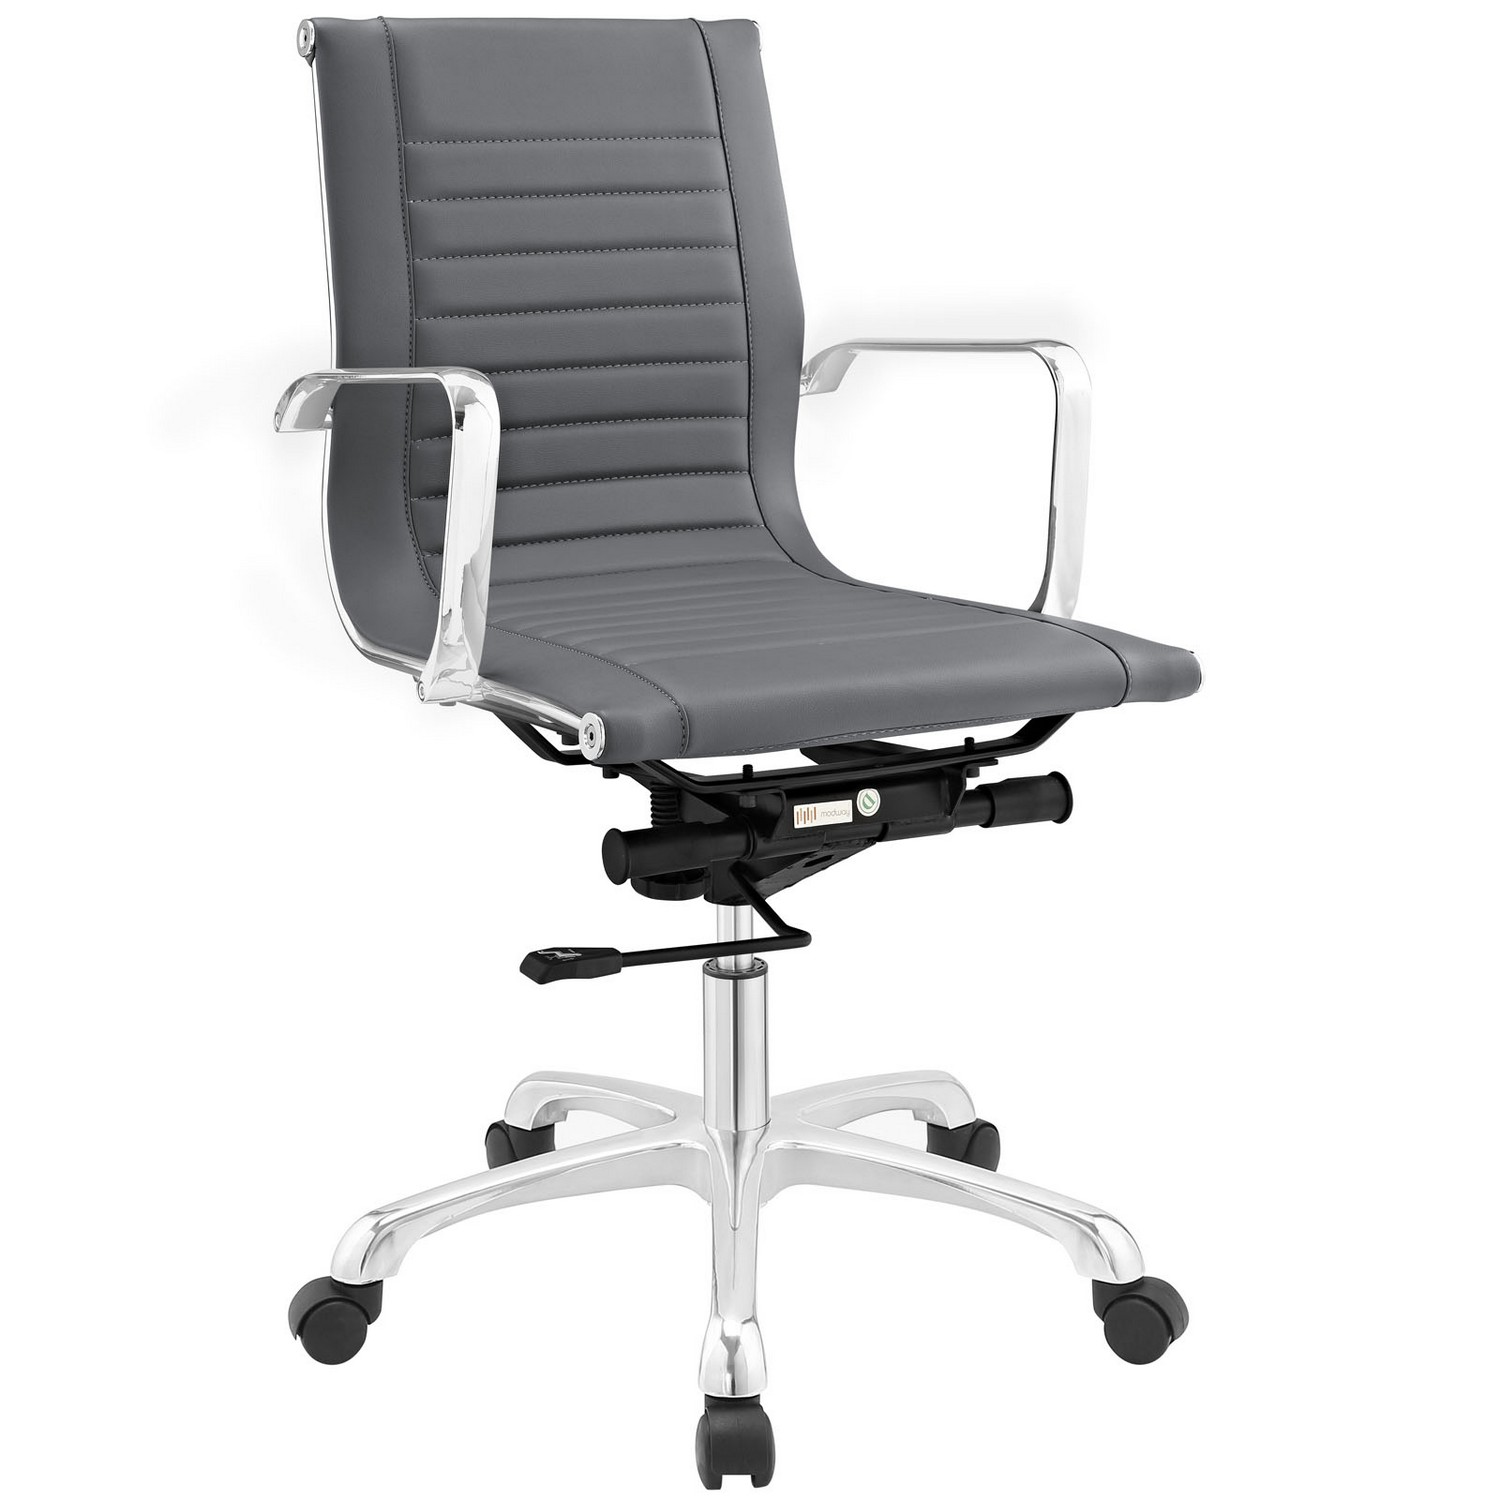 Modway Runway Mid Back Office Chair - Gray